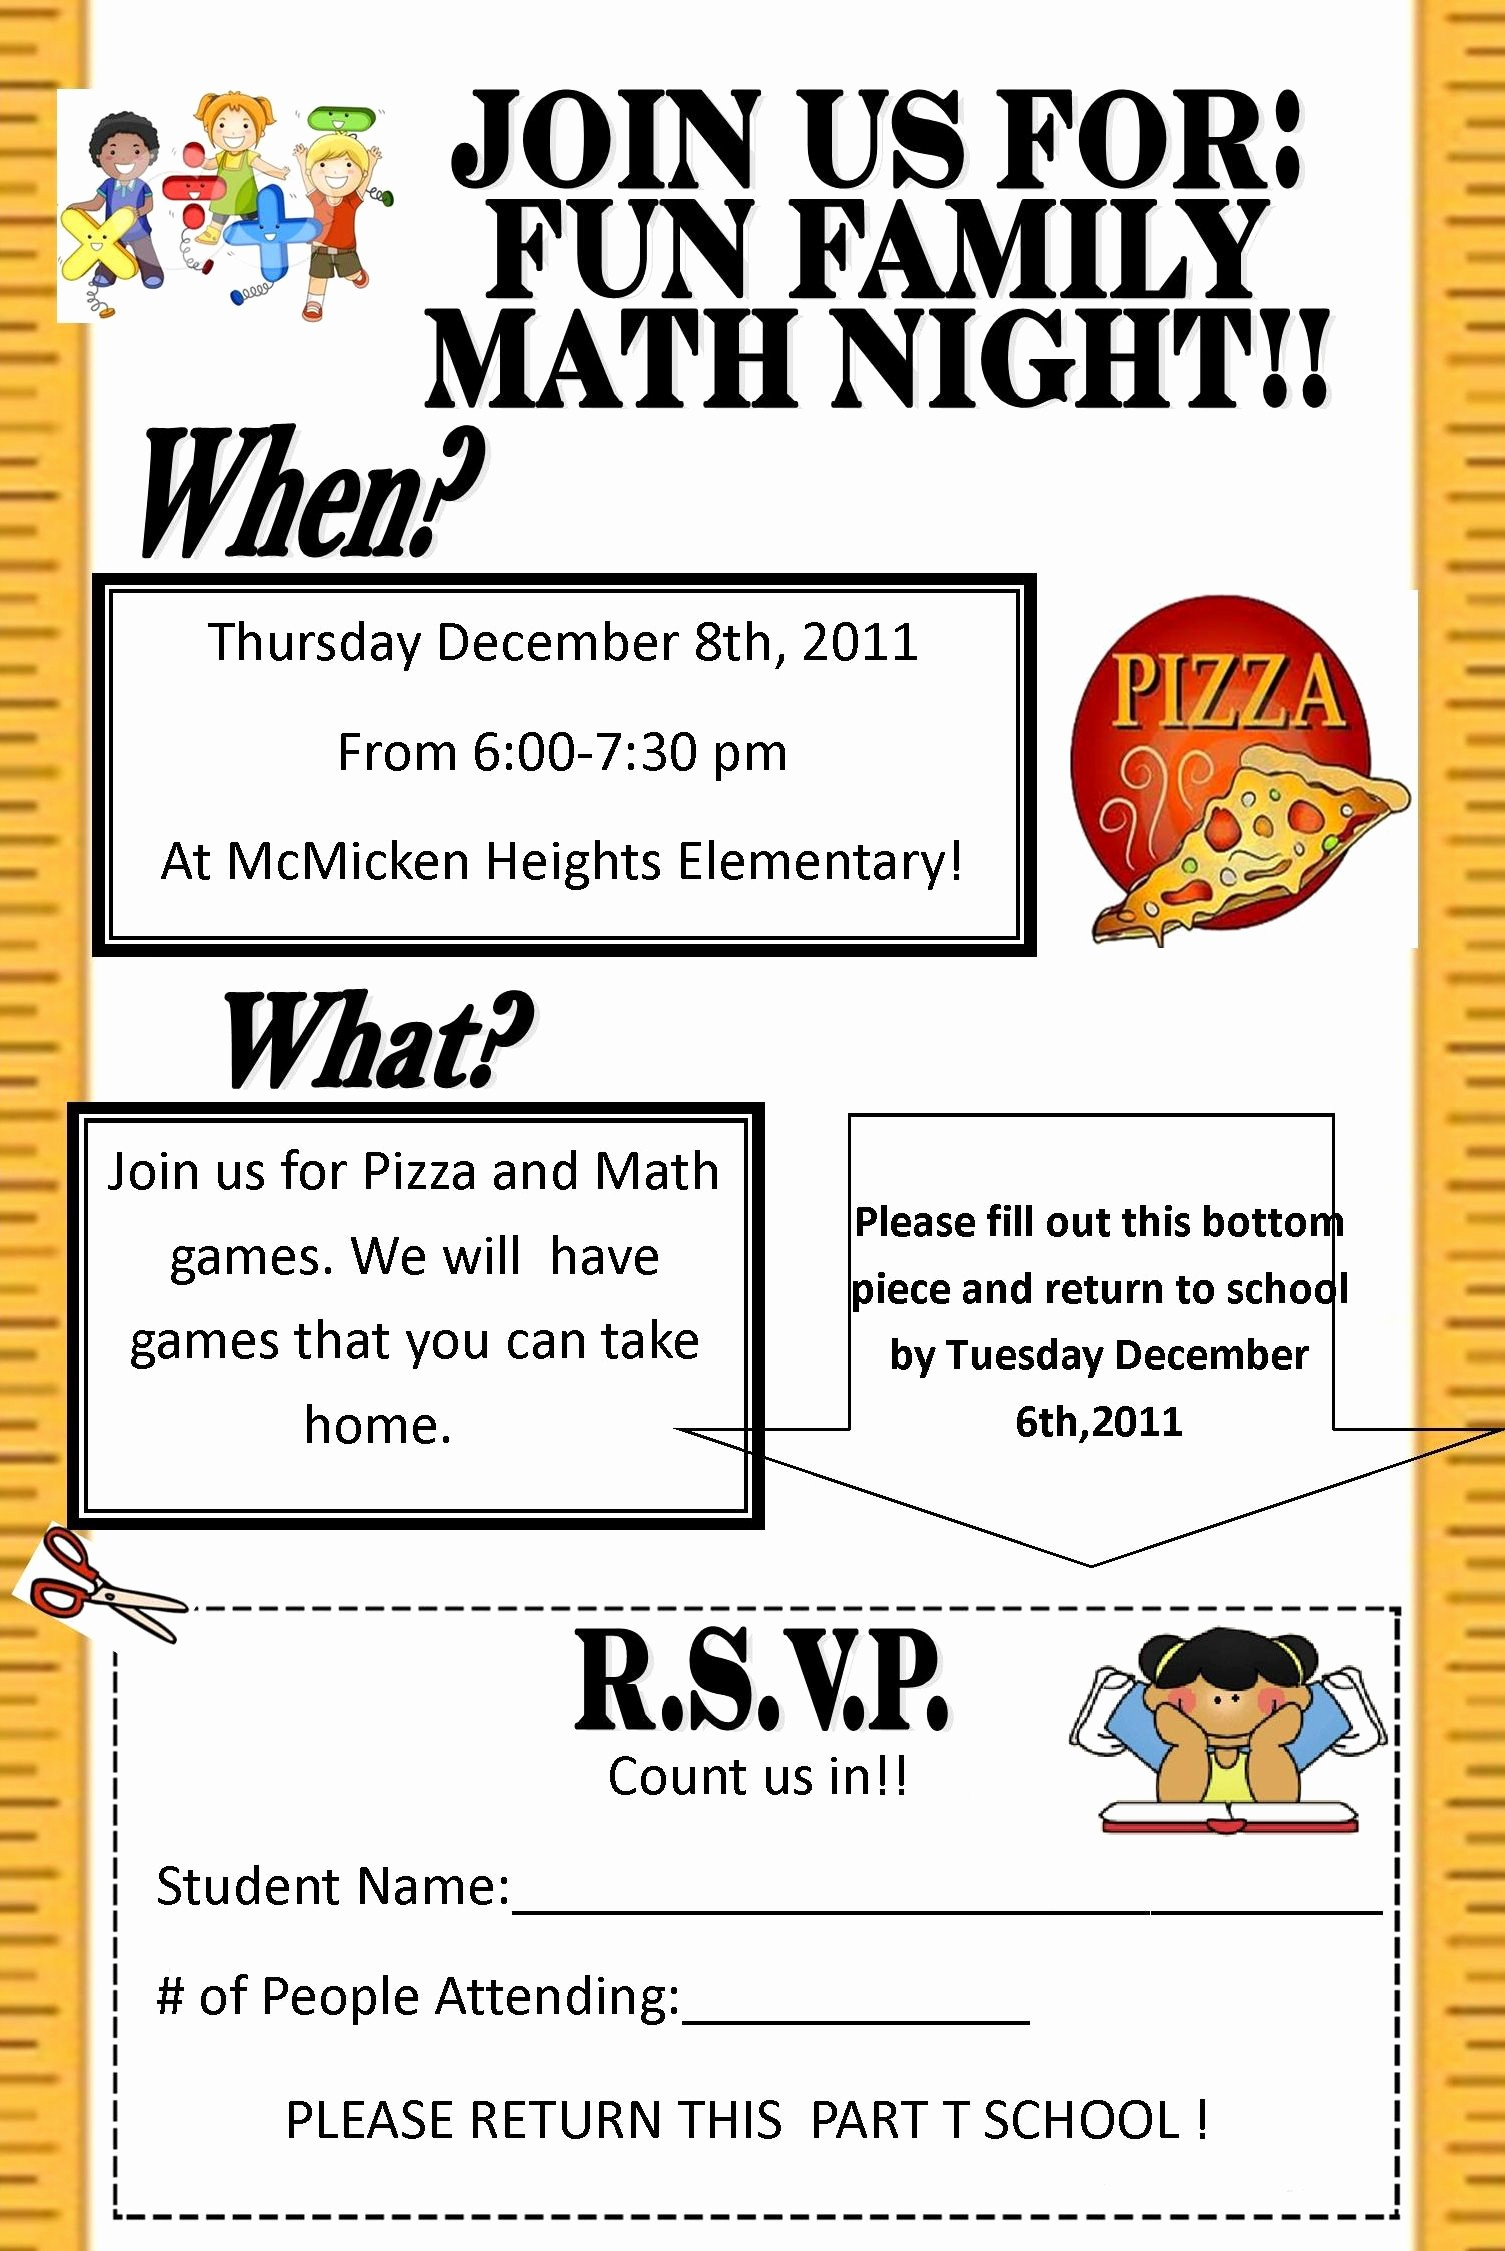 Parent Night Out Flyer Template Luxury Flyer for Family Math Night Google Search